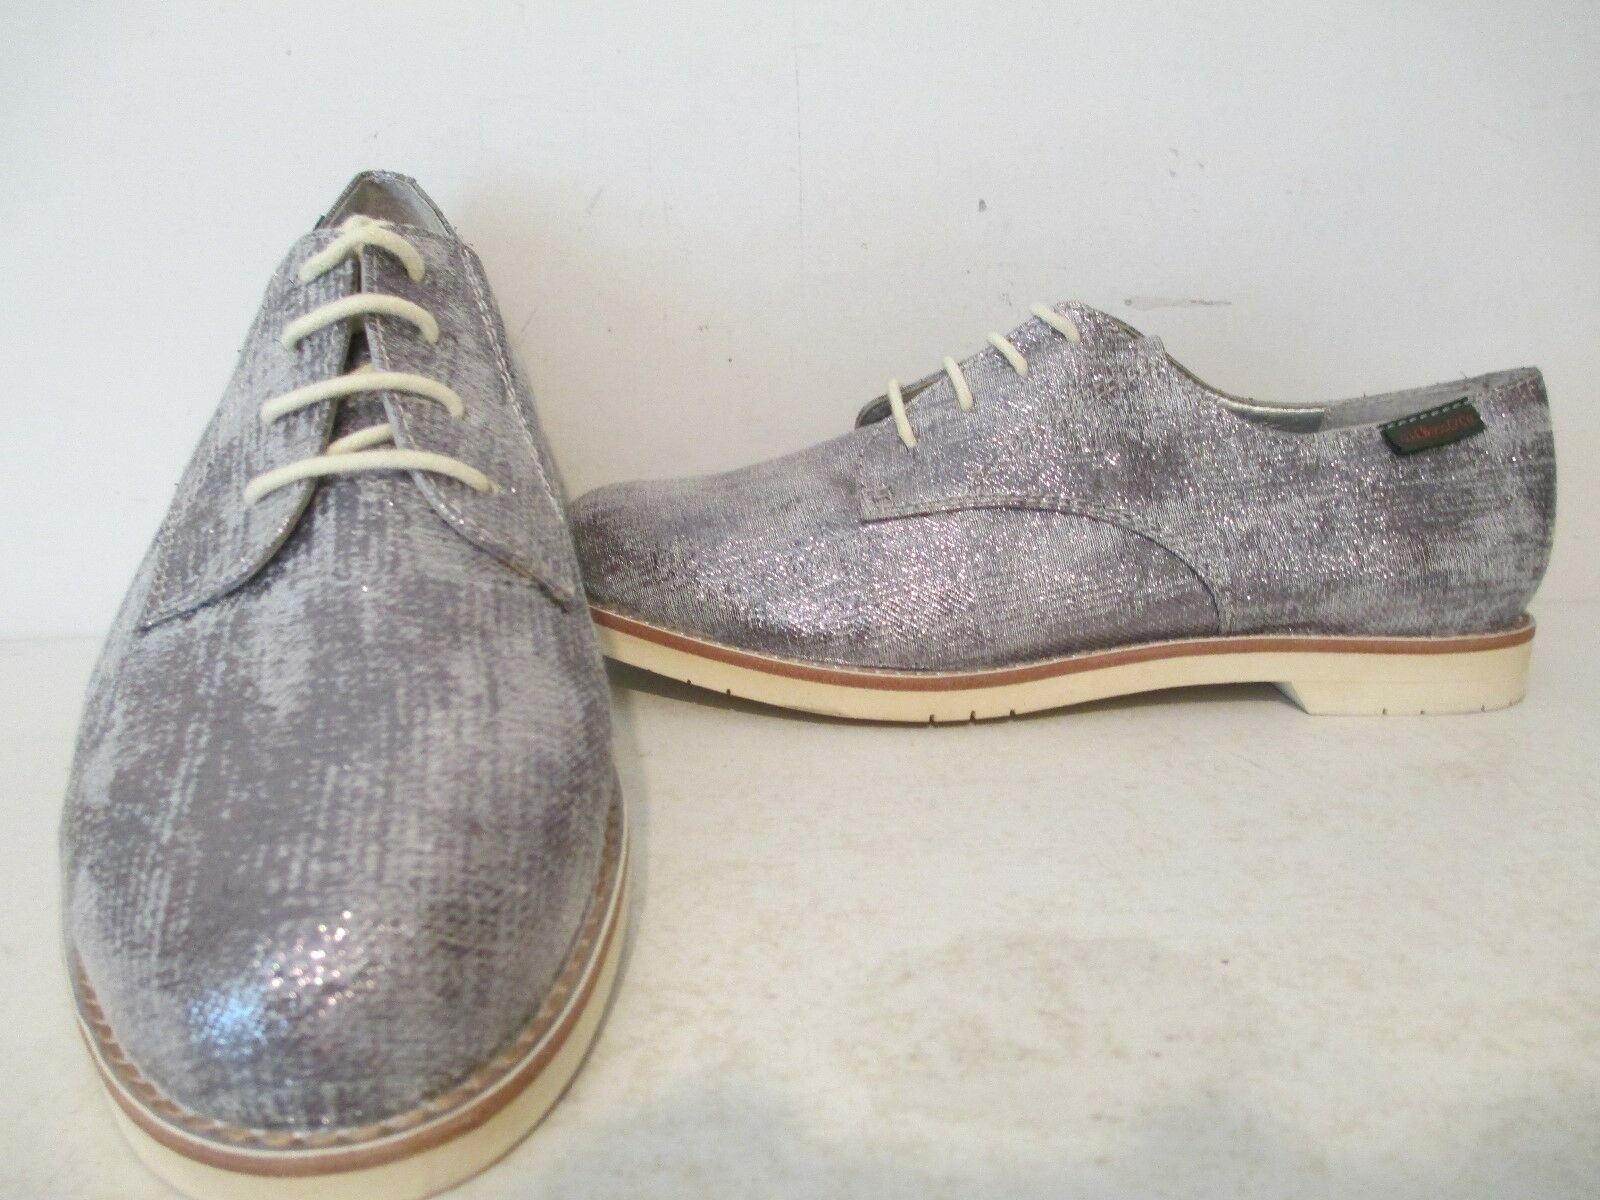 Bass Womens Ely-2 Fabric Casual Lace Up Oxford shoes Siver Glitz Size 6 M